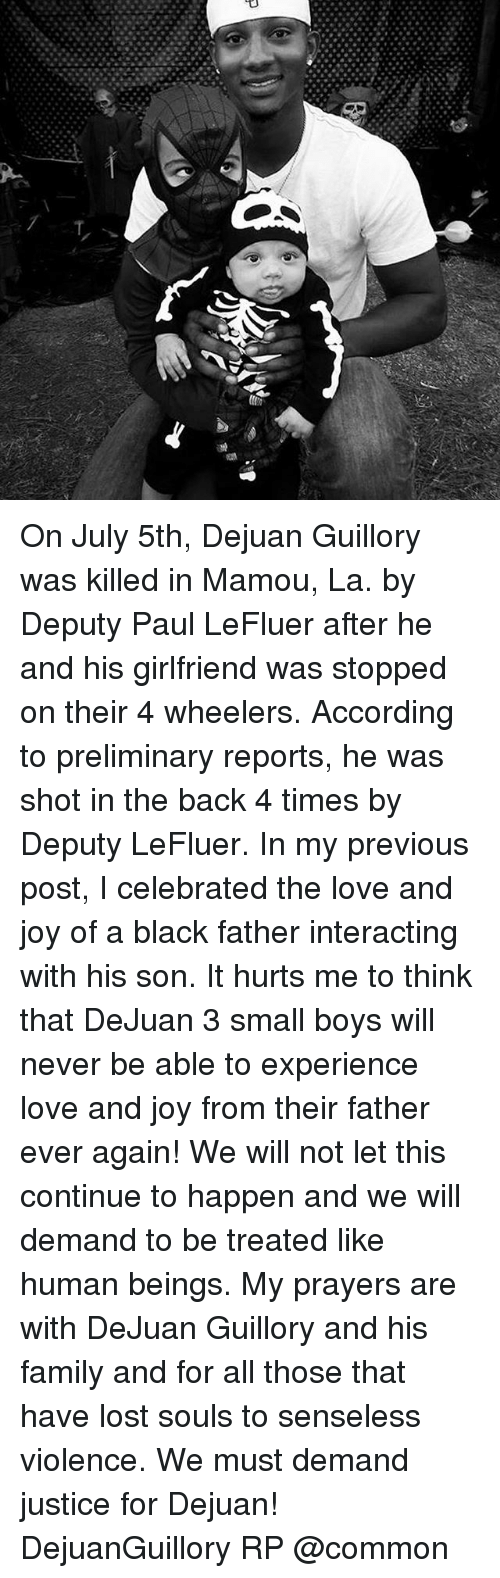 preliminary: On July 5th, Dejuan Guillory was killed in Mamou, La. by Deputy Paul LeFluer after he and his girlfriend was stopped on their 4 wheelers. According to preliminary reports, he was shot in the back 4 times by Deputy LeFluer. In my previous post, I celebrated the love and joy of a black father interacting with his son. It hurts me to think that DeJuan 3 small boys will never be able to experience love and joy from their father ever again! We will not let this continue to happen and we will demand to be treated like human beings. My prayers are with DeJuan Guillory and his family and for all those that have lost souls to senseless violence. We must demand justice for Dejuan! DejuanGuillory RP @common